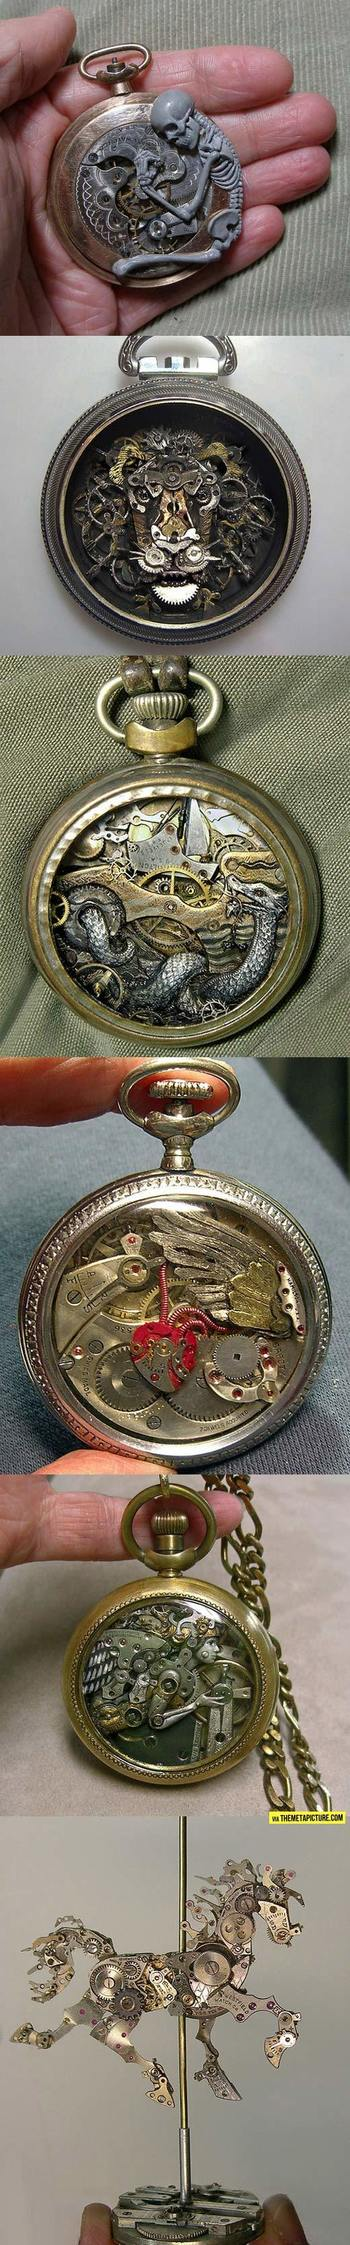 Sculptures from old watch parts…